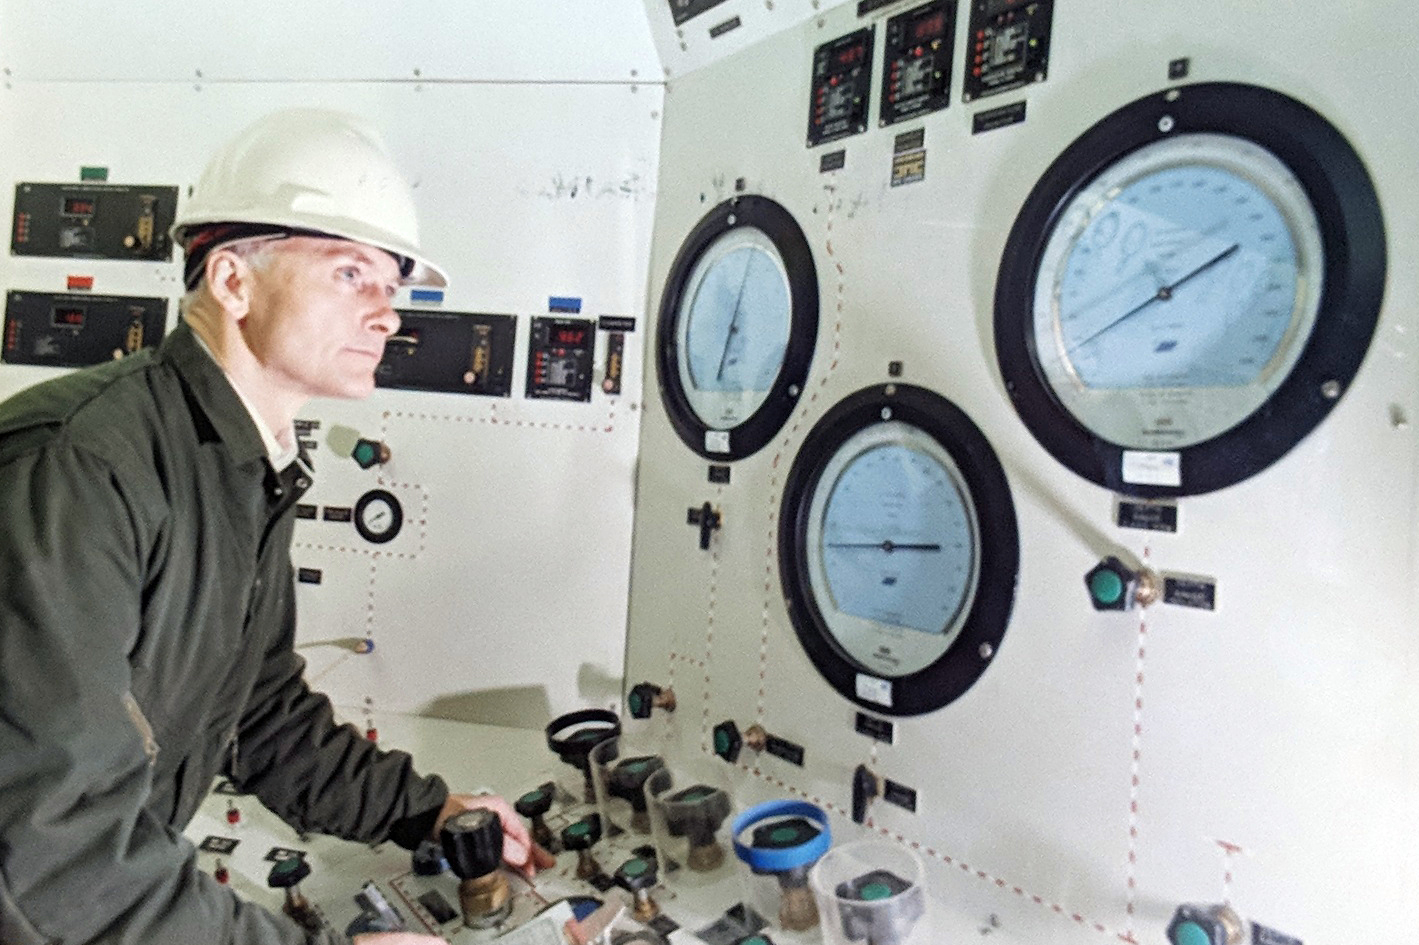 Frank Murray, pictured in 1991 at the National Hyperbaric Centre, was woken with the news by his son.